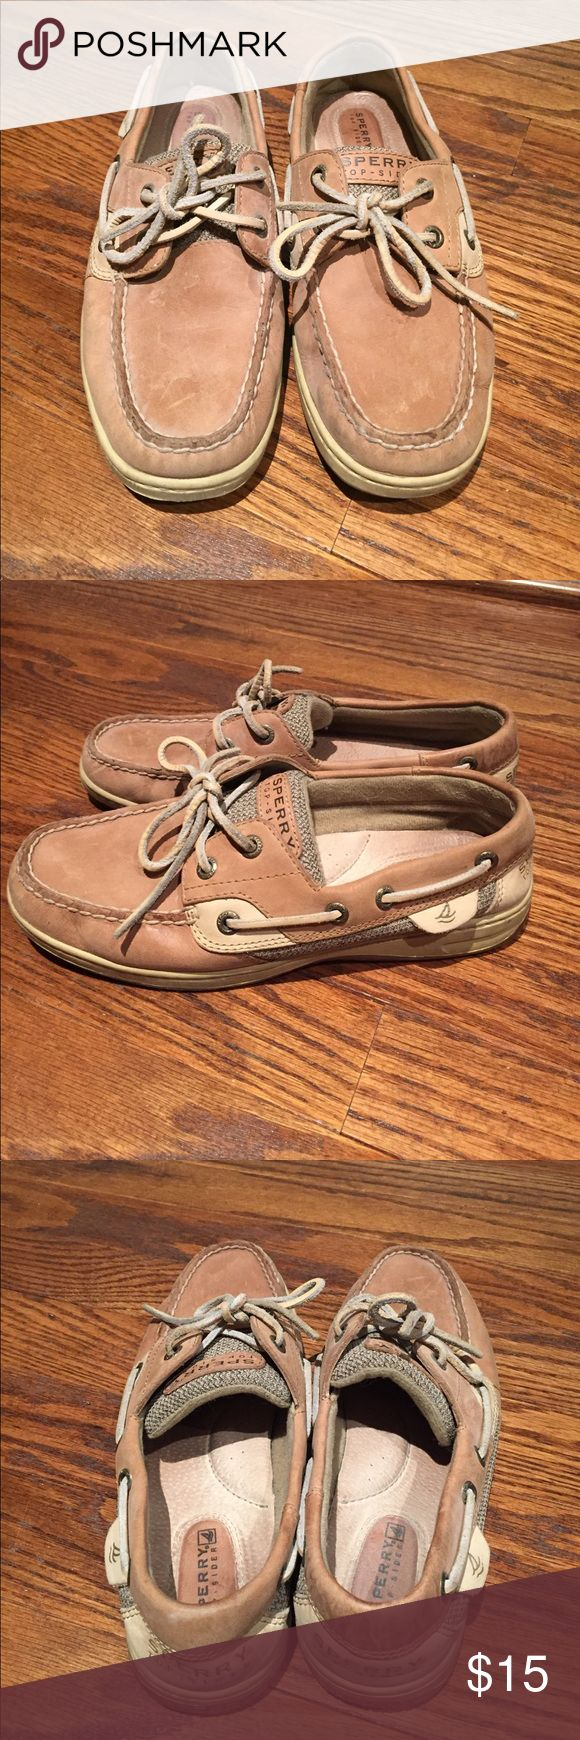 Sperry Topsider Boat Shoes, size 6 Perfectly broken in sperry topsiders, very gently worn in great condition. Sperry Top-Sider Shoes Sneakers